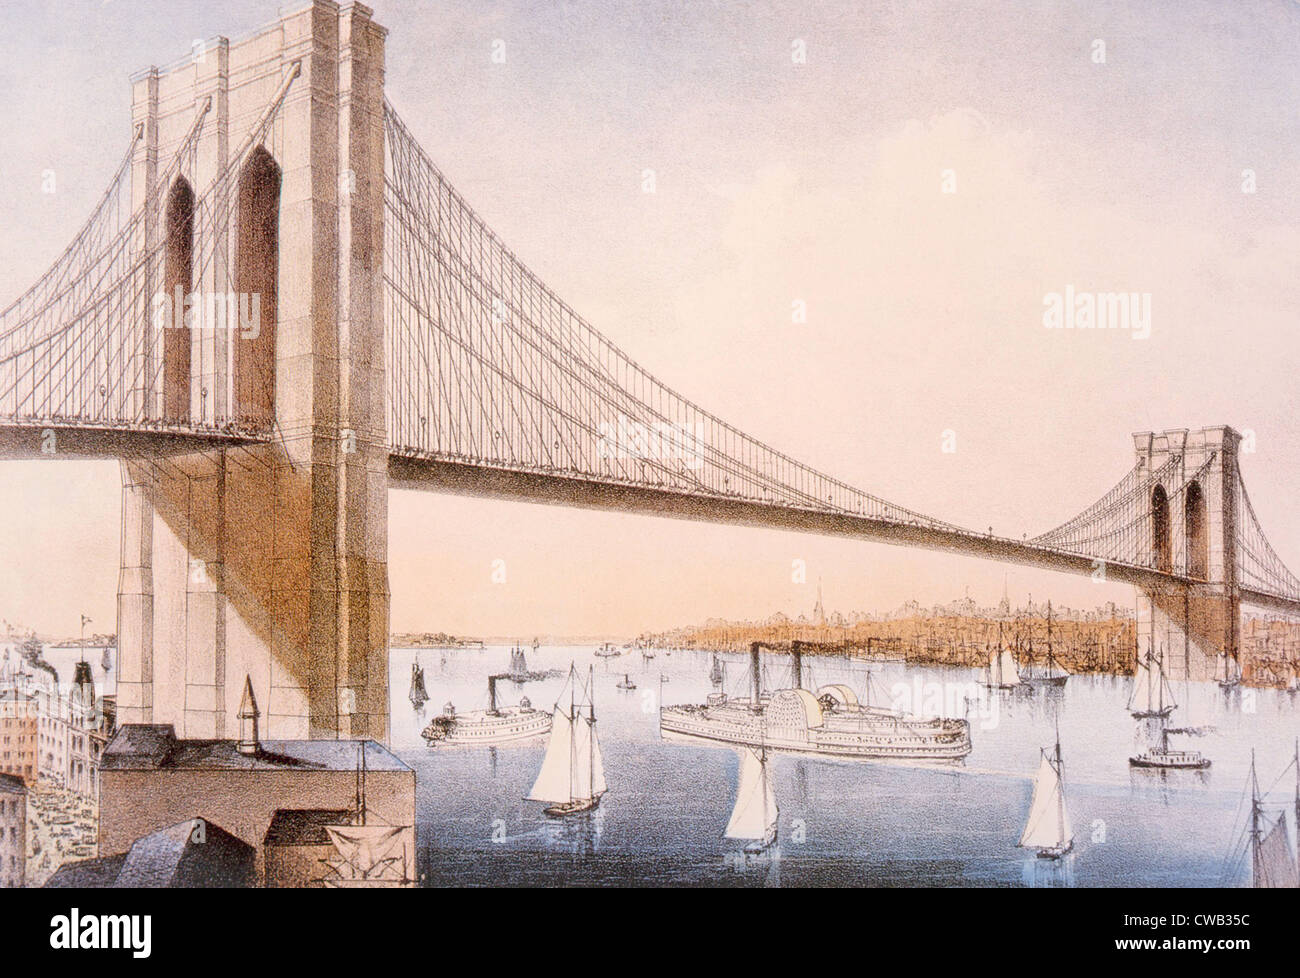 The Brooklyn Bridge, Currier & Ives, 1881 - Stock Image